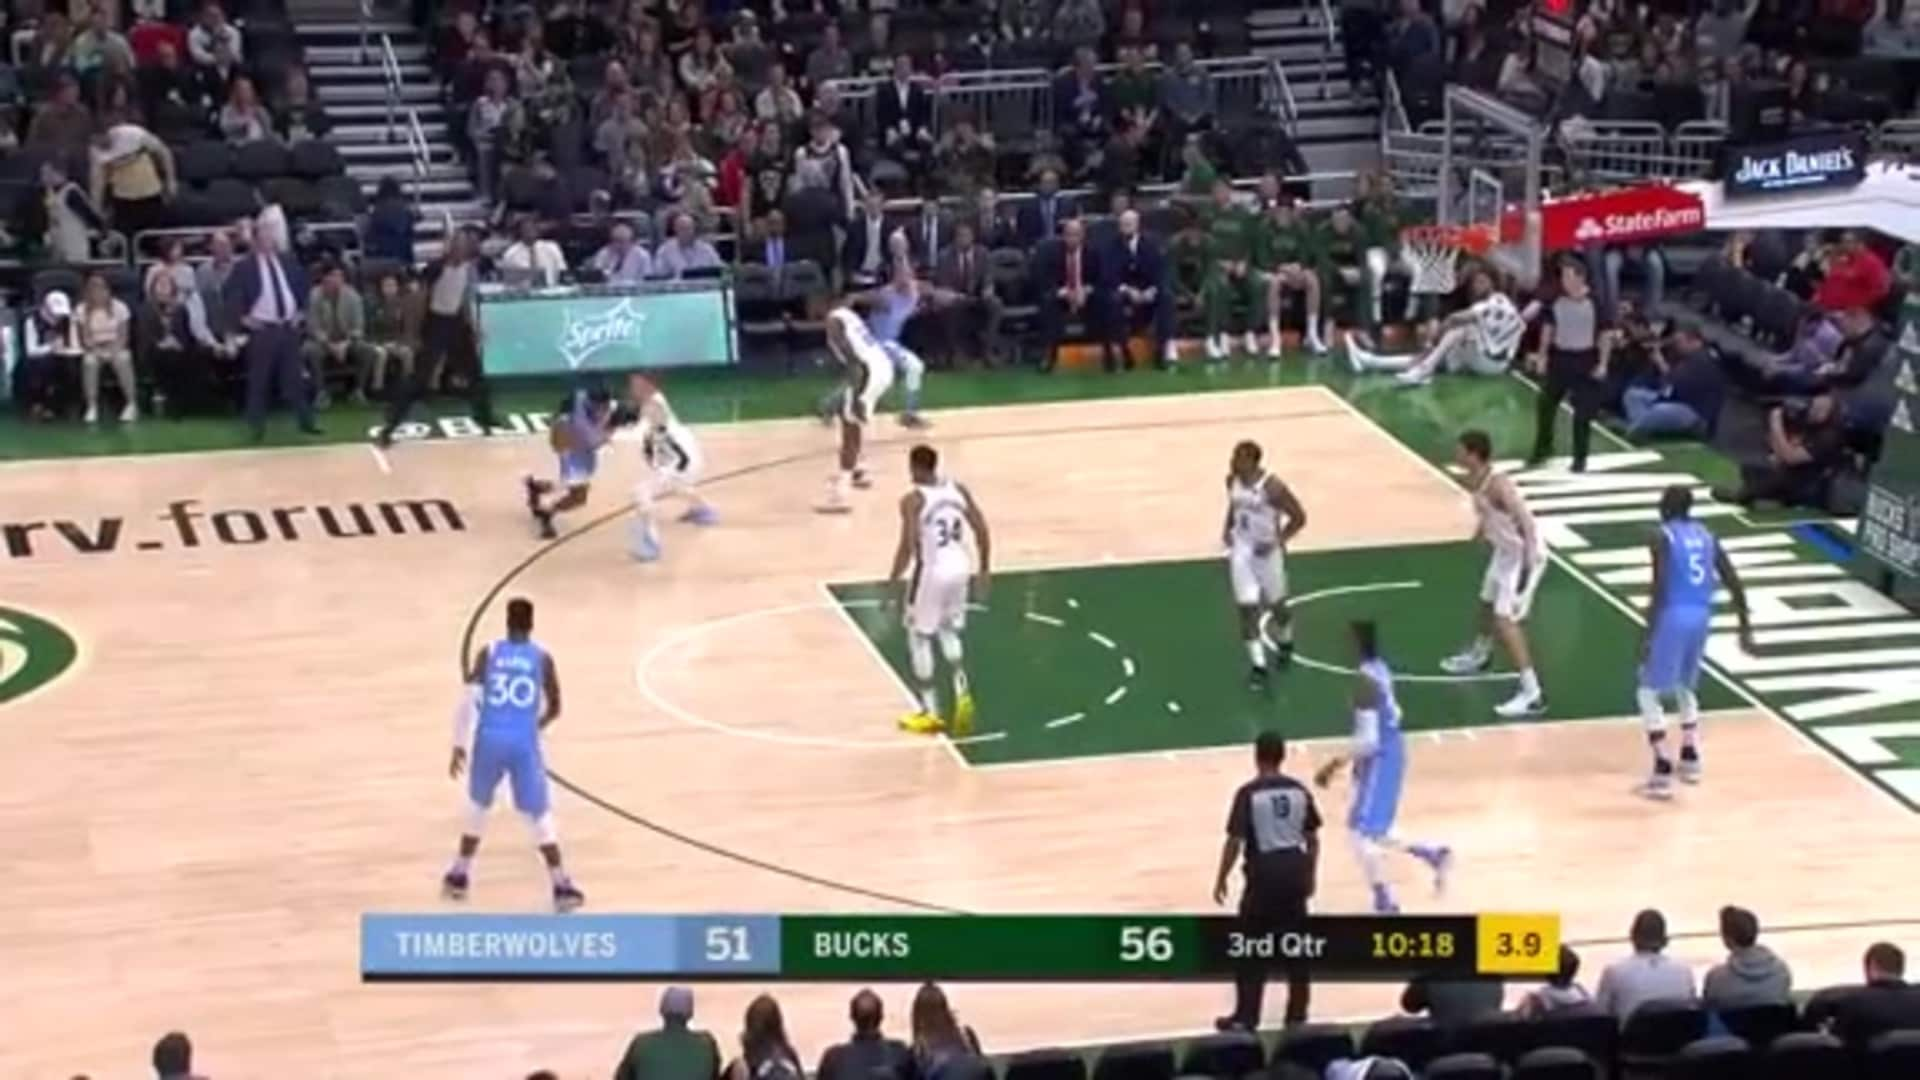 Highlights | Timberwolves 104, Bucks 106 (1.1.20)